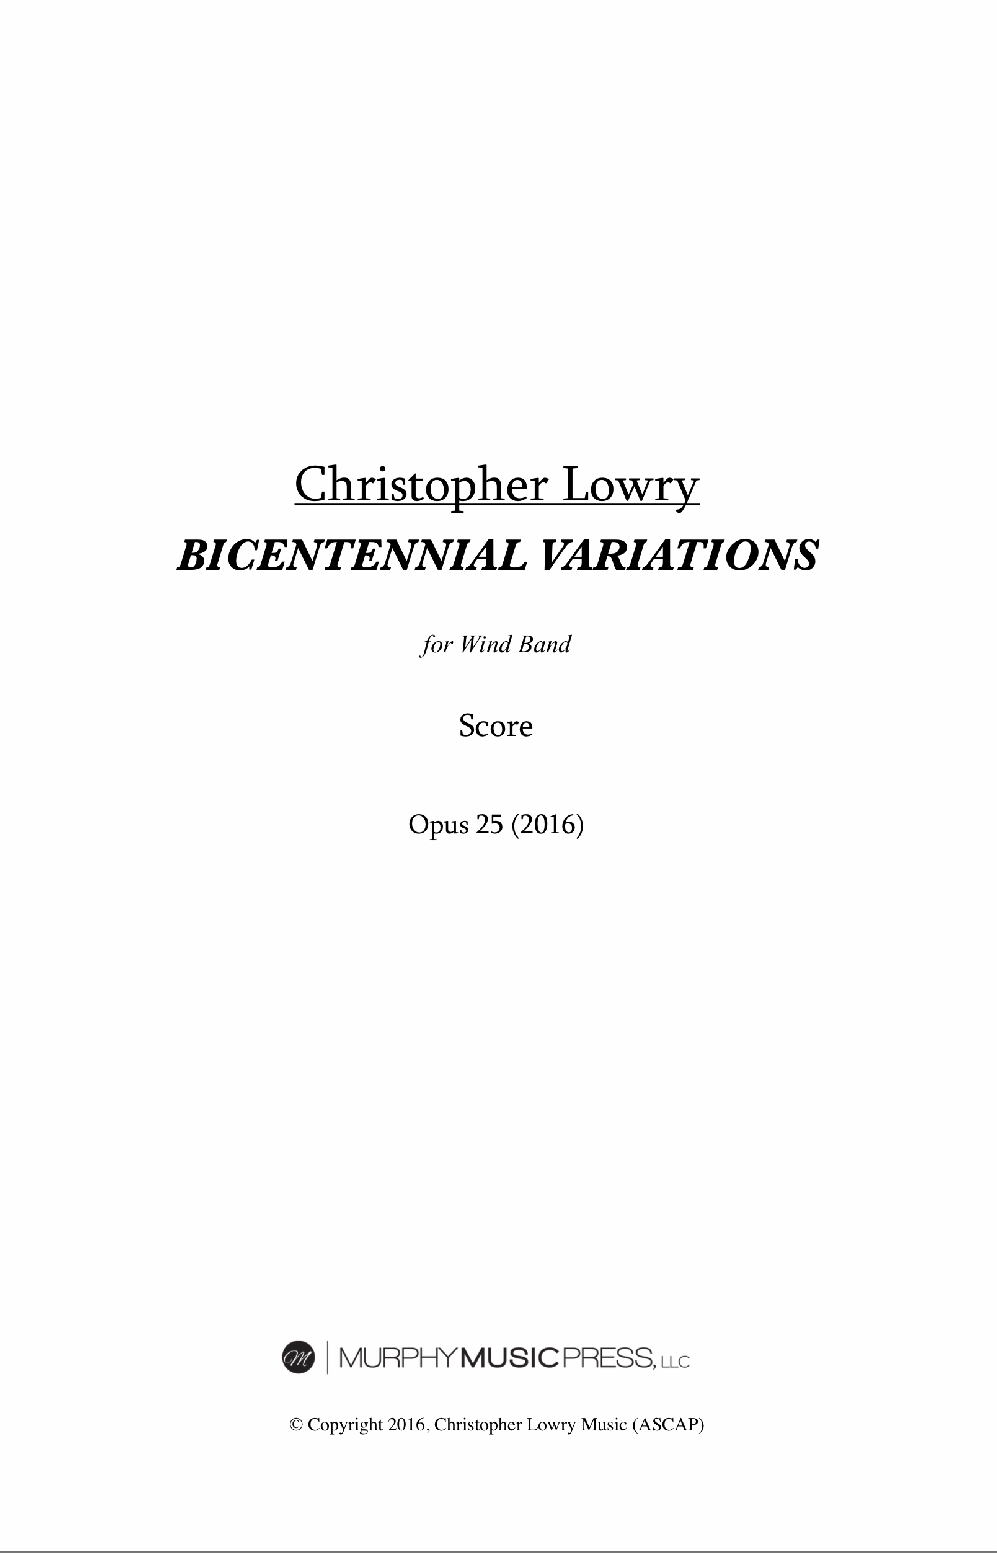 Bicentennial Variations  by Christopher Lowry